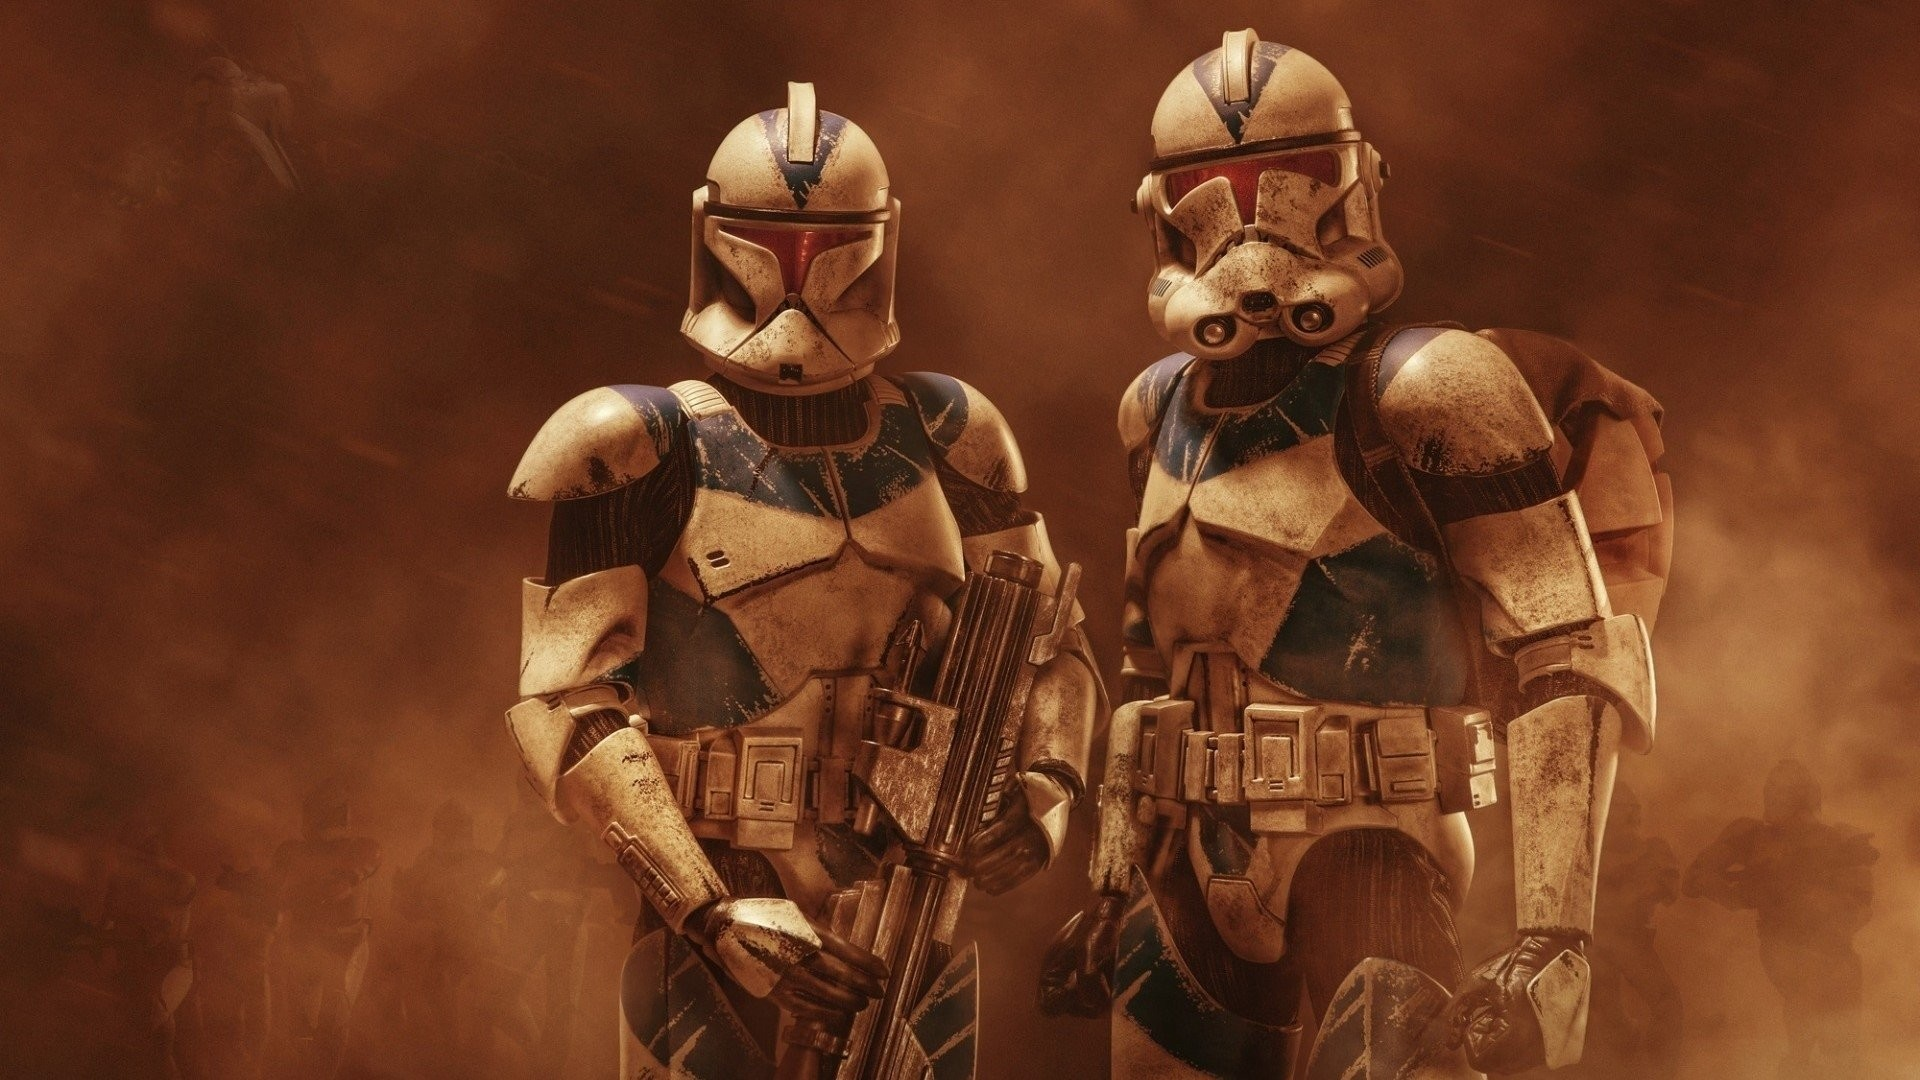 Clone Trooper Wallpaper 72 Images